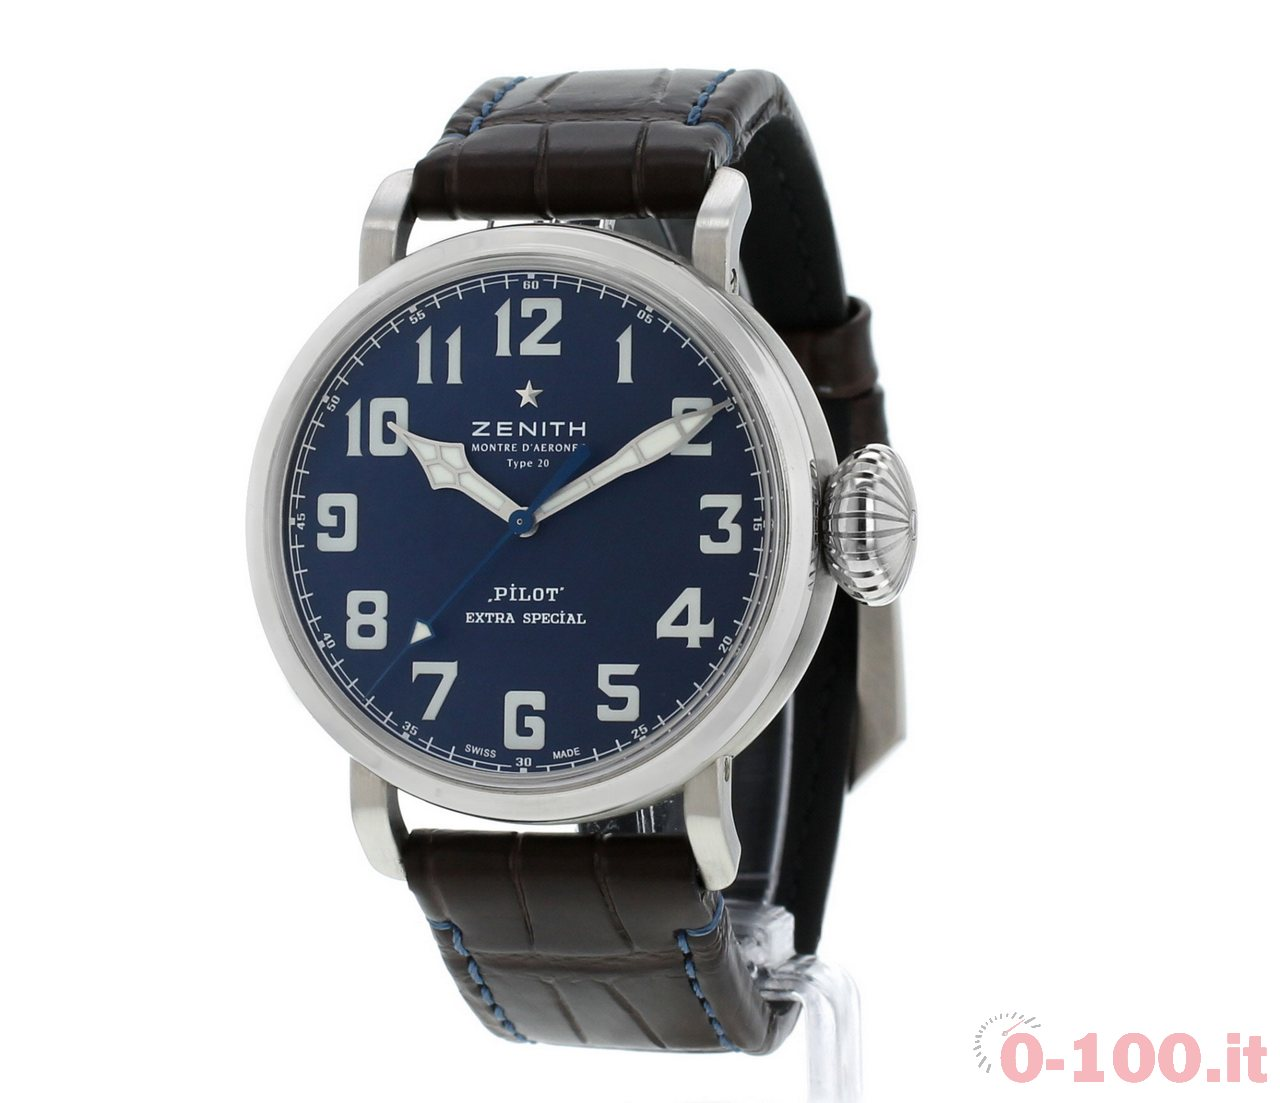 zenith-pilot-type-20-extra-special-blue-limited-edition-the-watch-gallery-prezzo-price_0-1007